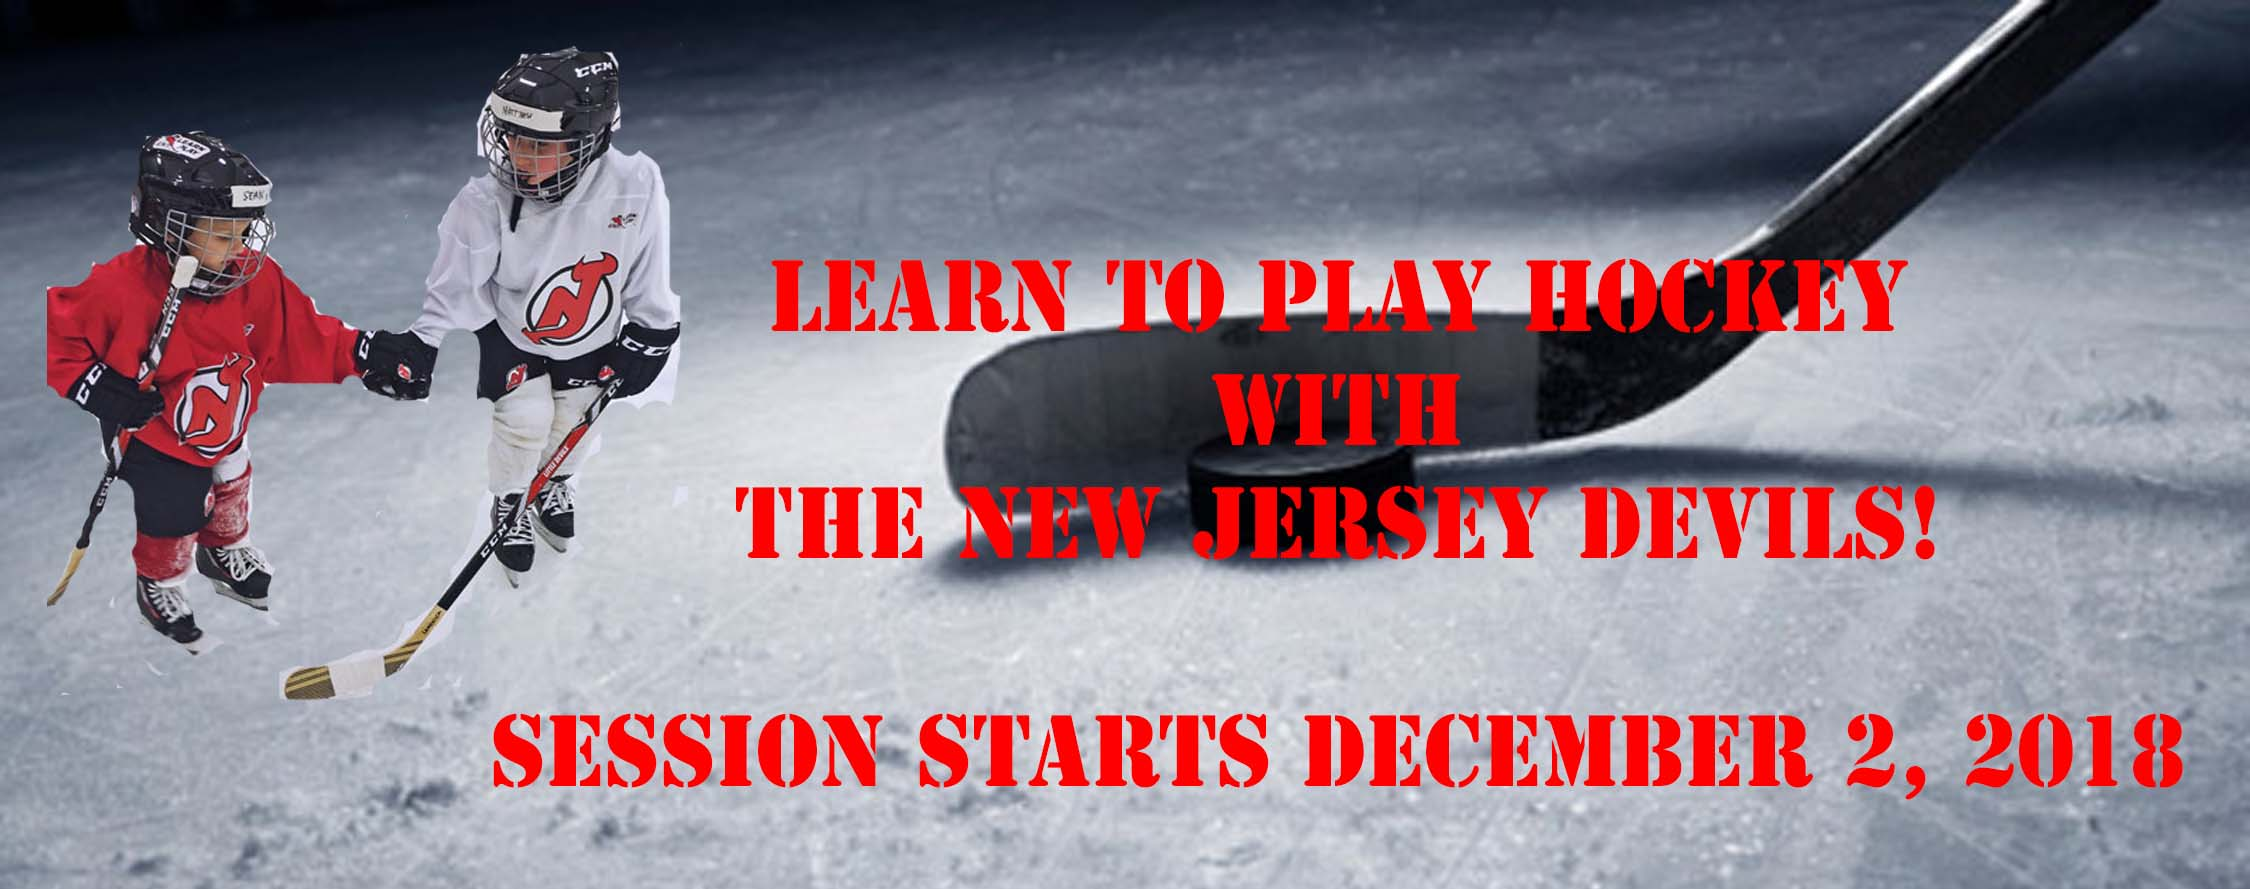 learn to play-devils-website